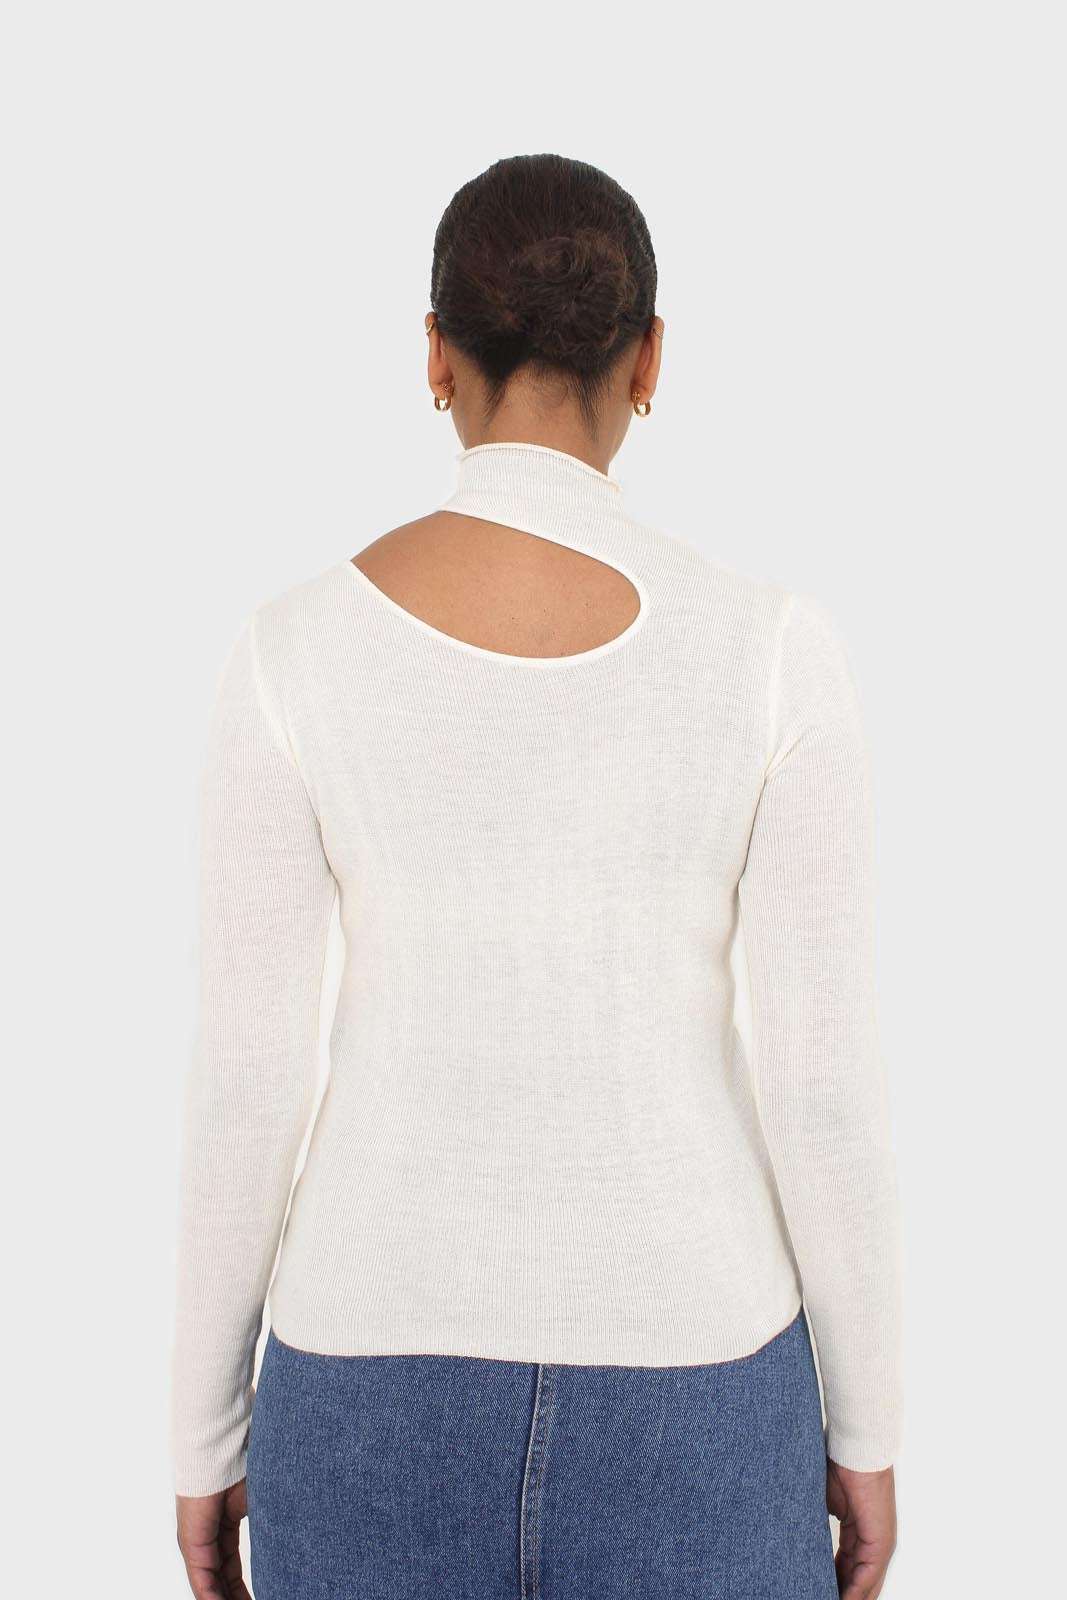 Ivory large cut out fitted knit turtleneck 3